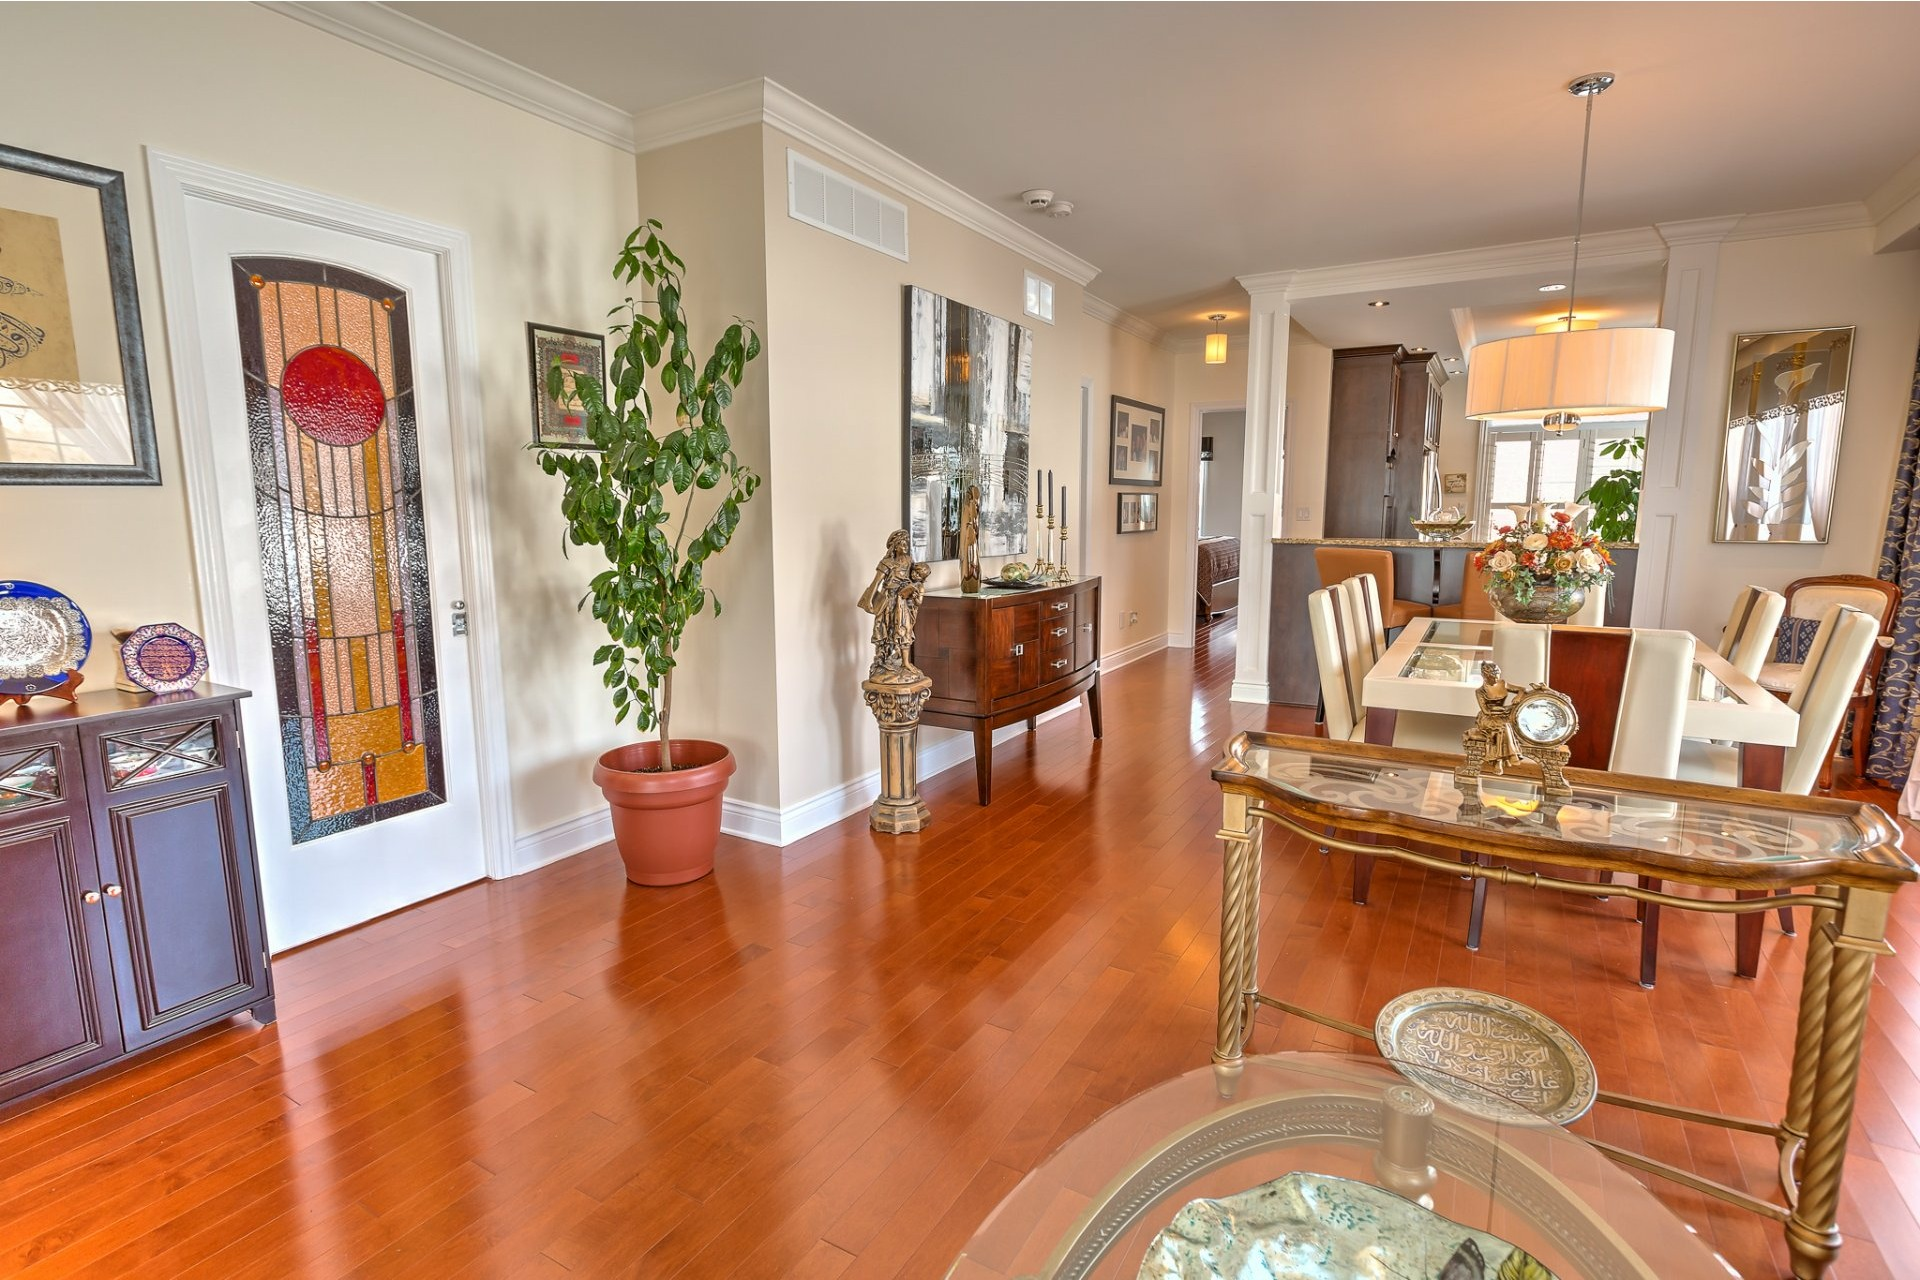 image 3 - Apartment For sale Brossard - 7 rooms